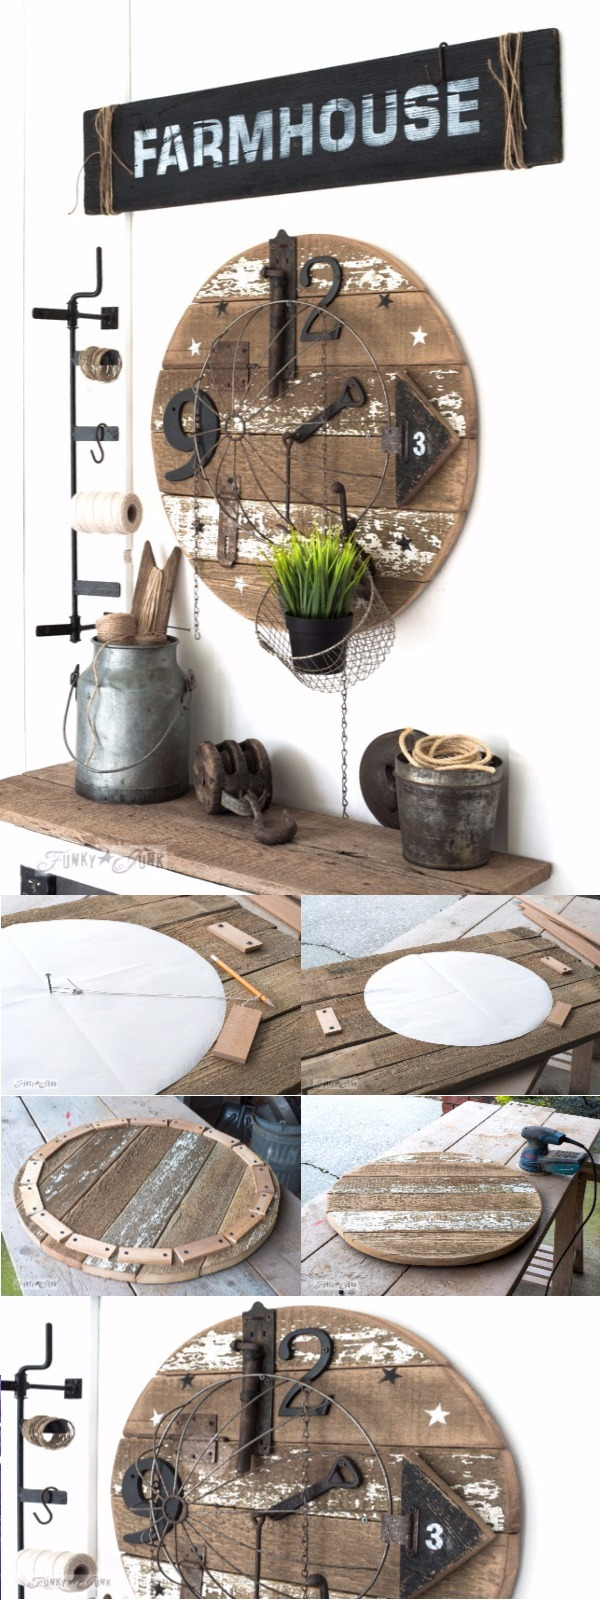 clock Upcycling Projects To Make Your Home Gorgeous